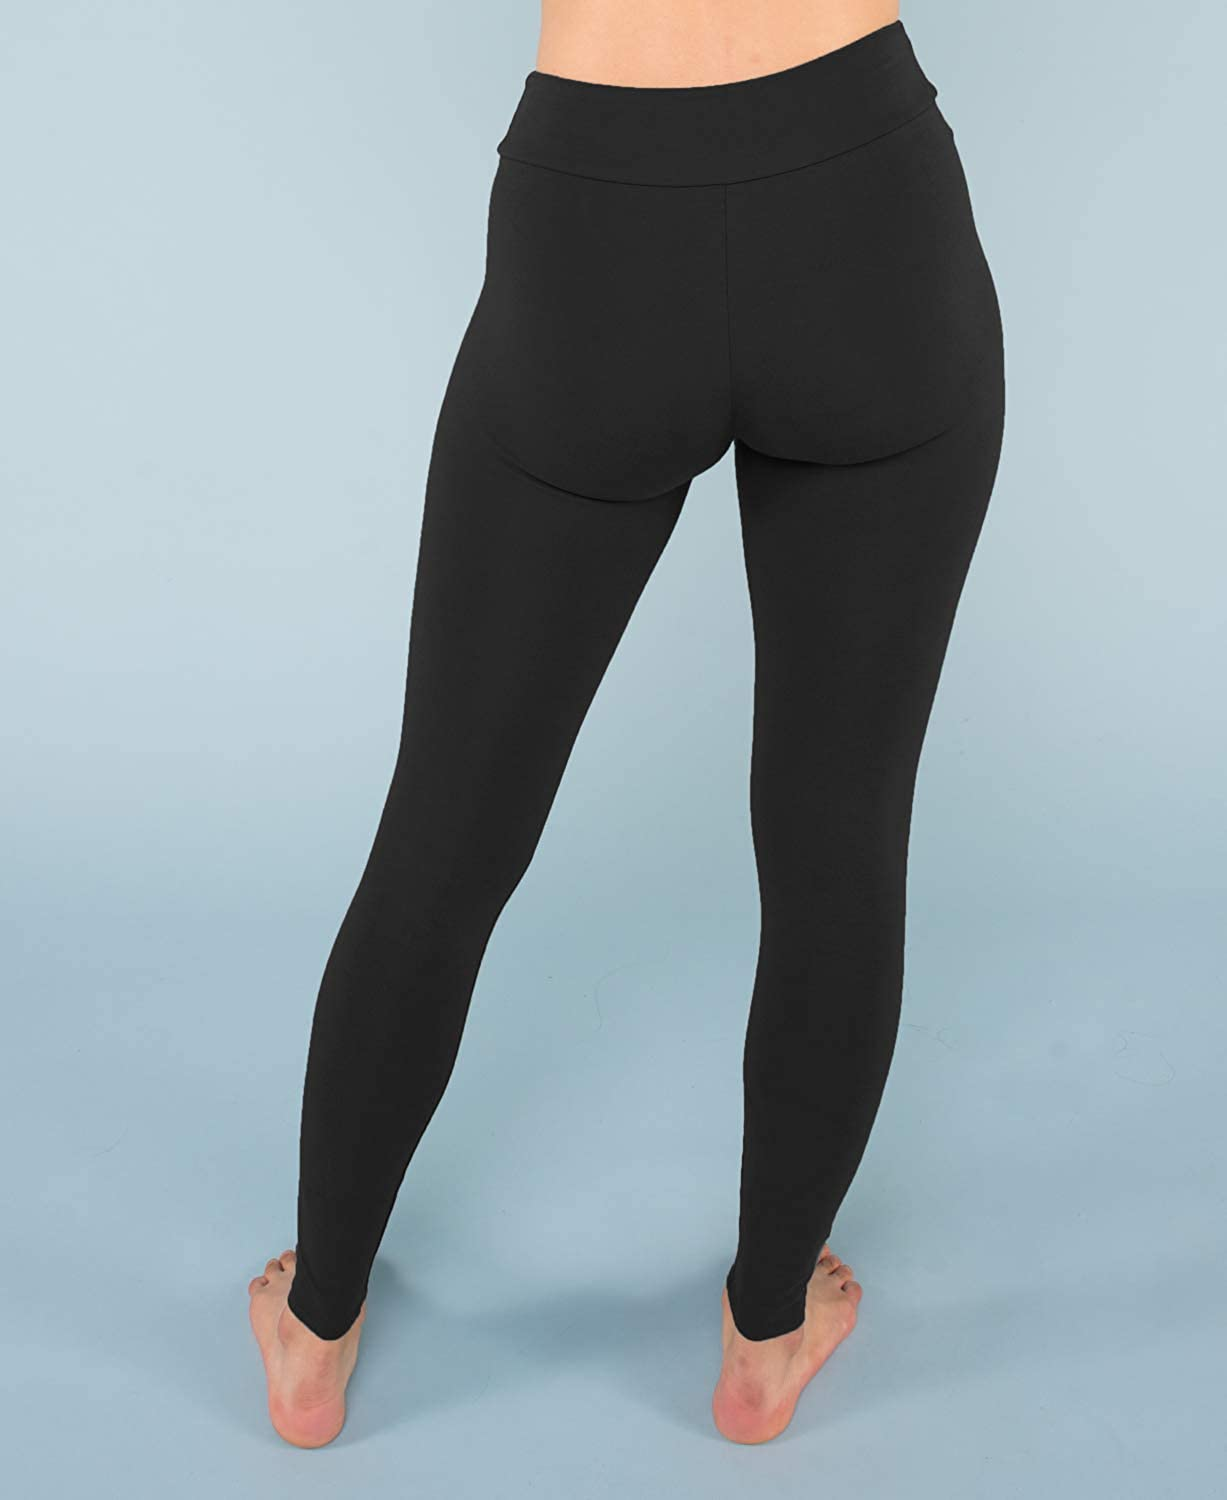 Soul Flower Women's Organic Cotton Leggings, Ladies Full Length Fitted Yoga Pants, Stretchy Solid Color Long Basic Bottoms